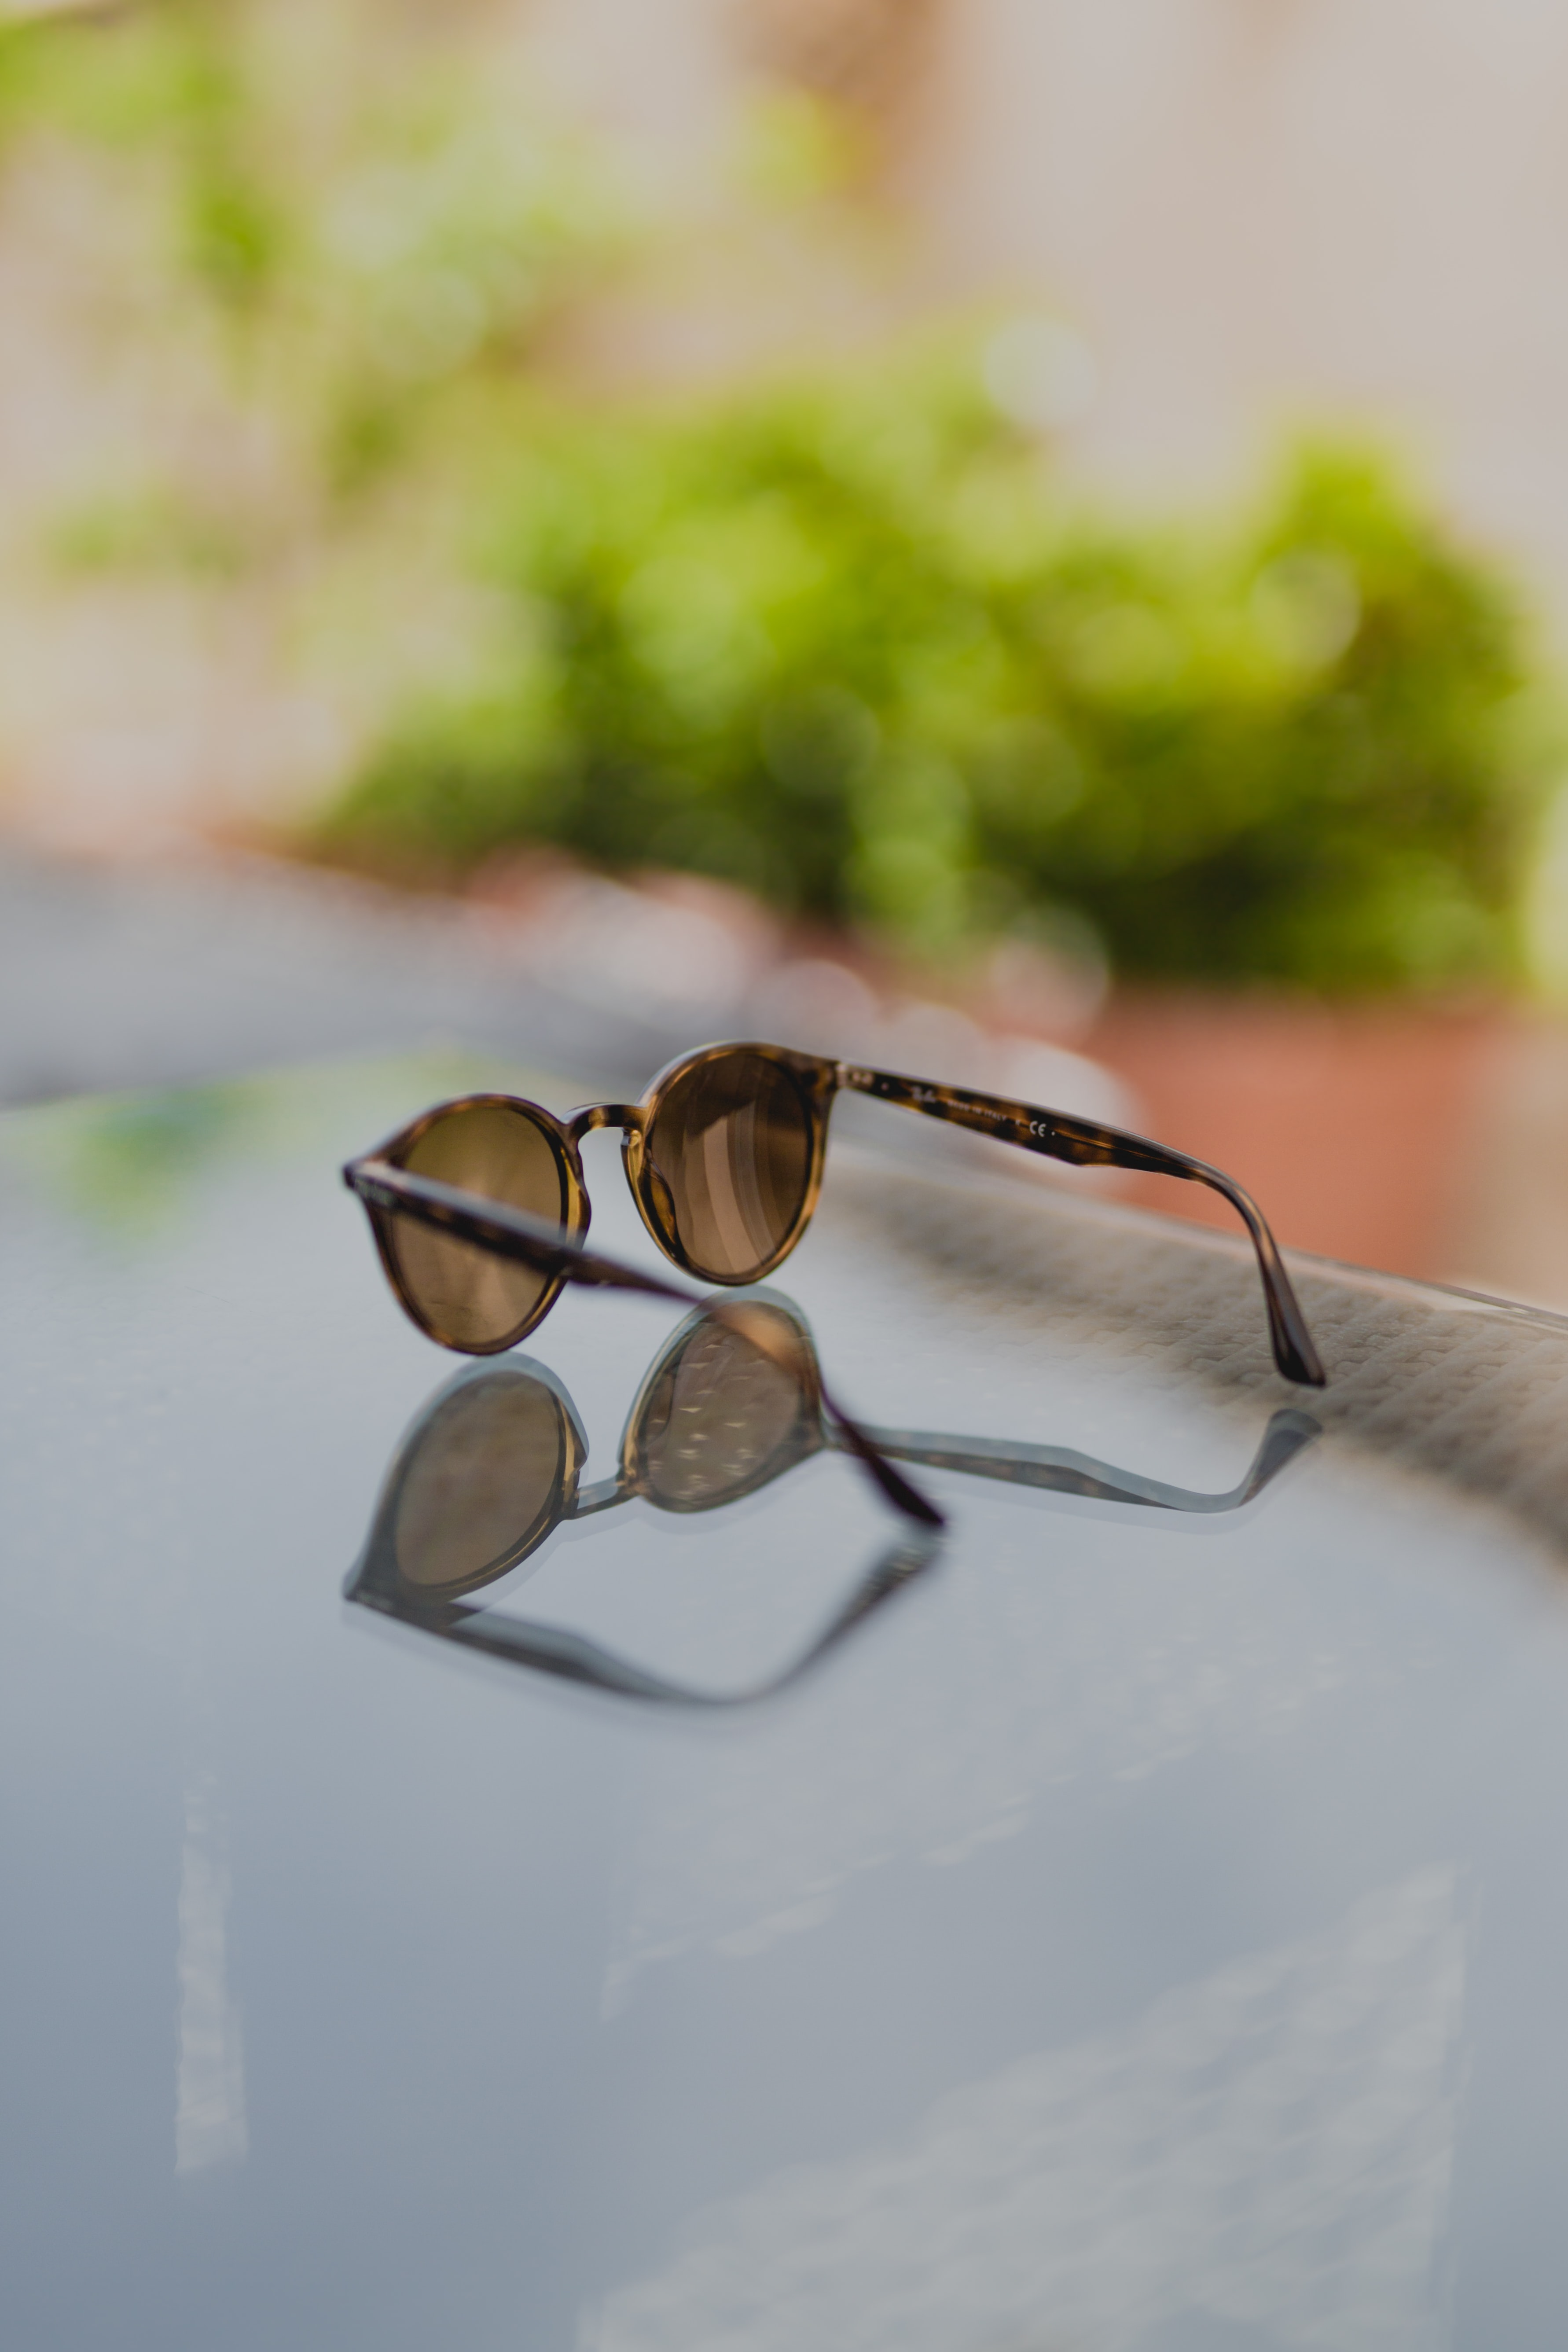 selective focus photography of sunglasses